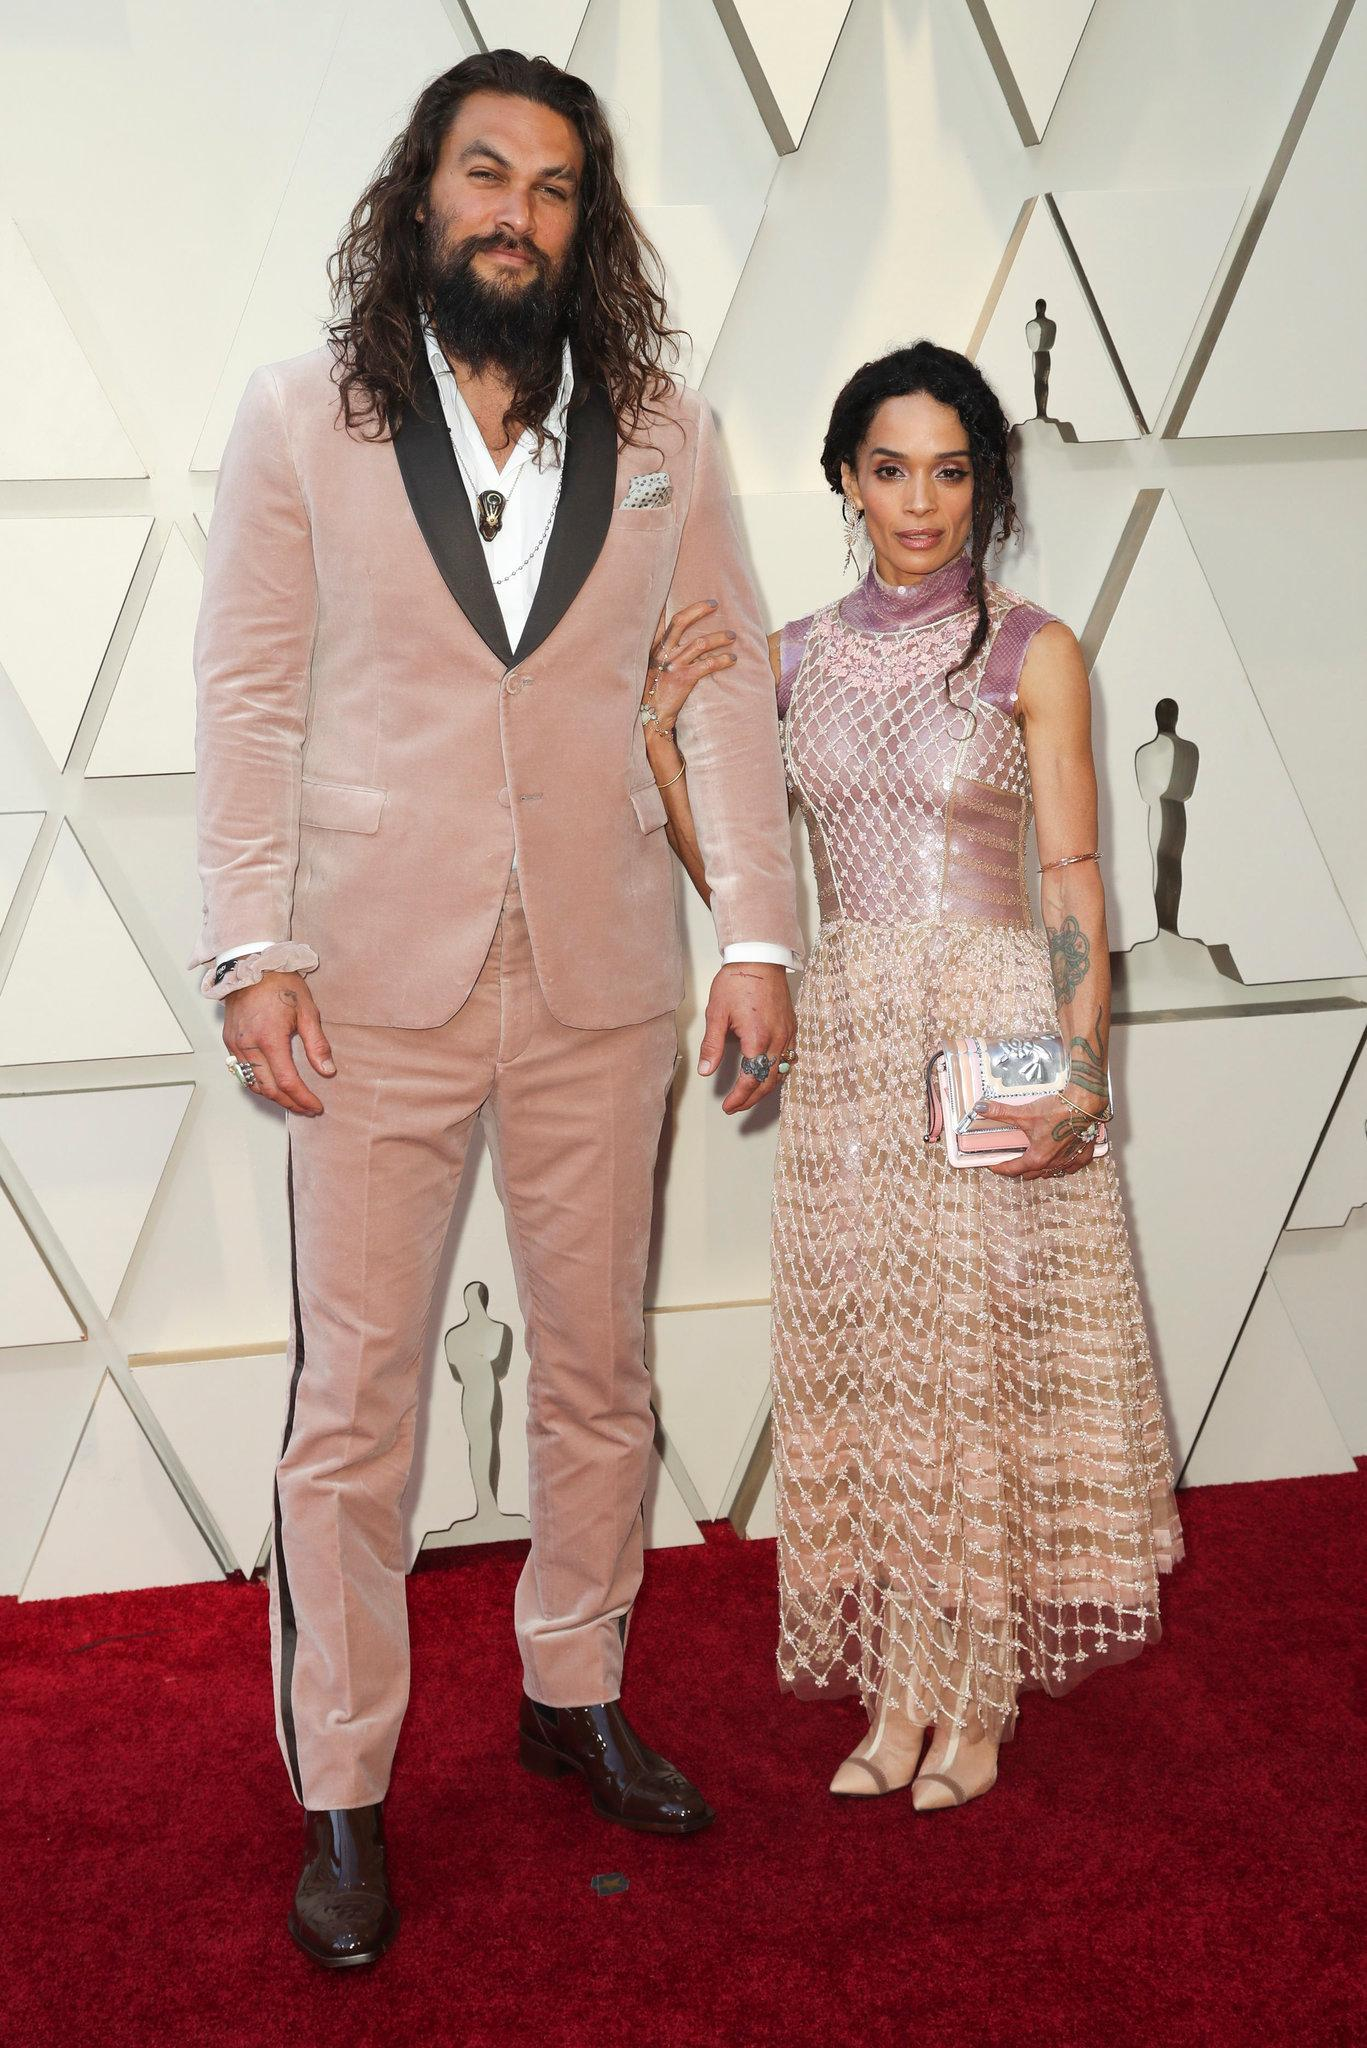 josh-oscars-2019-2723-jason-momoa-and-lisa-bonet-superJumbo-v3.jpg